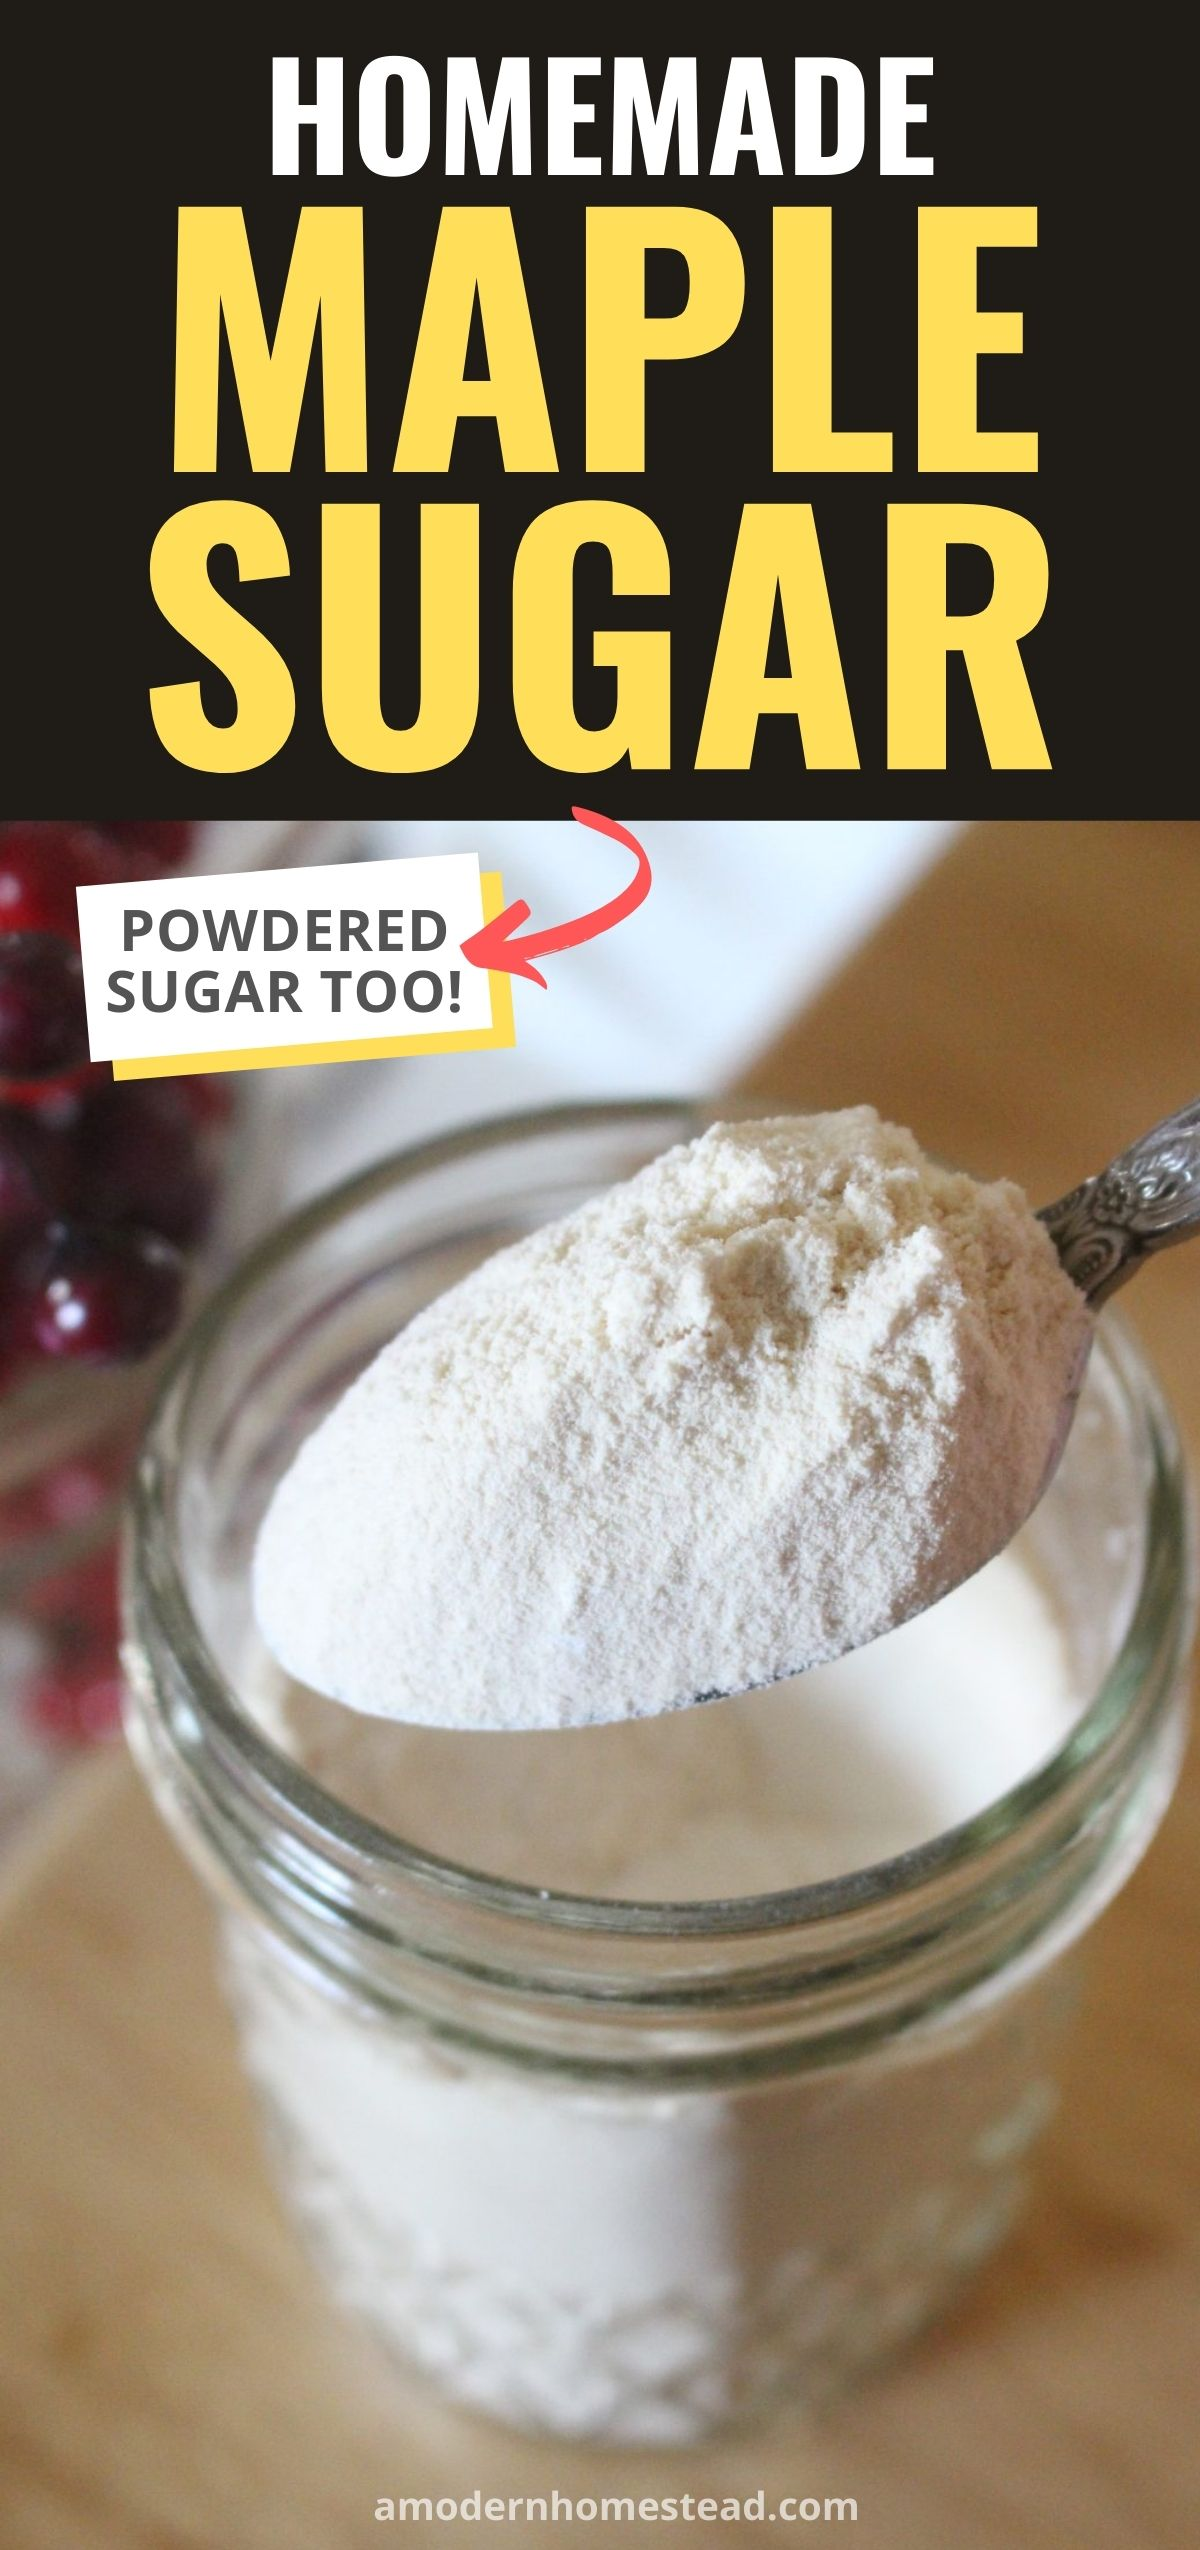 Finished powdered maple sugar in a glass jar